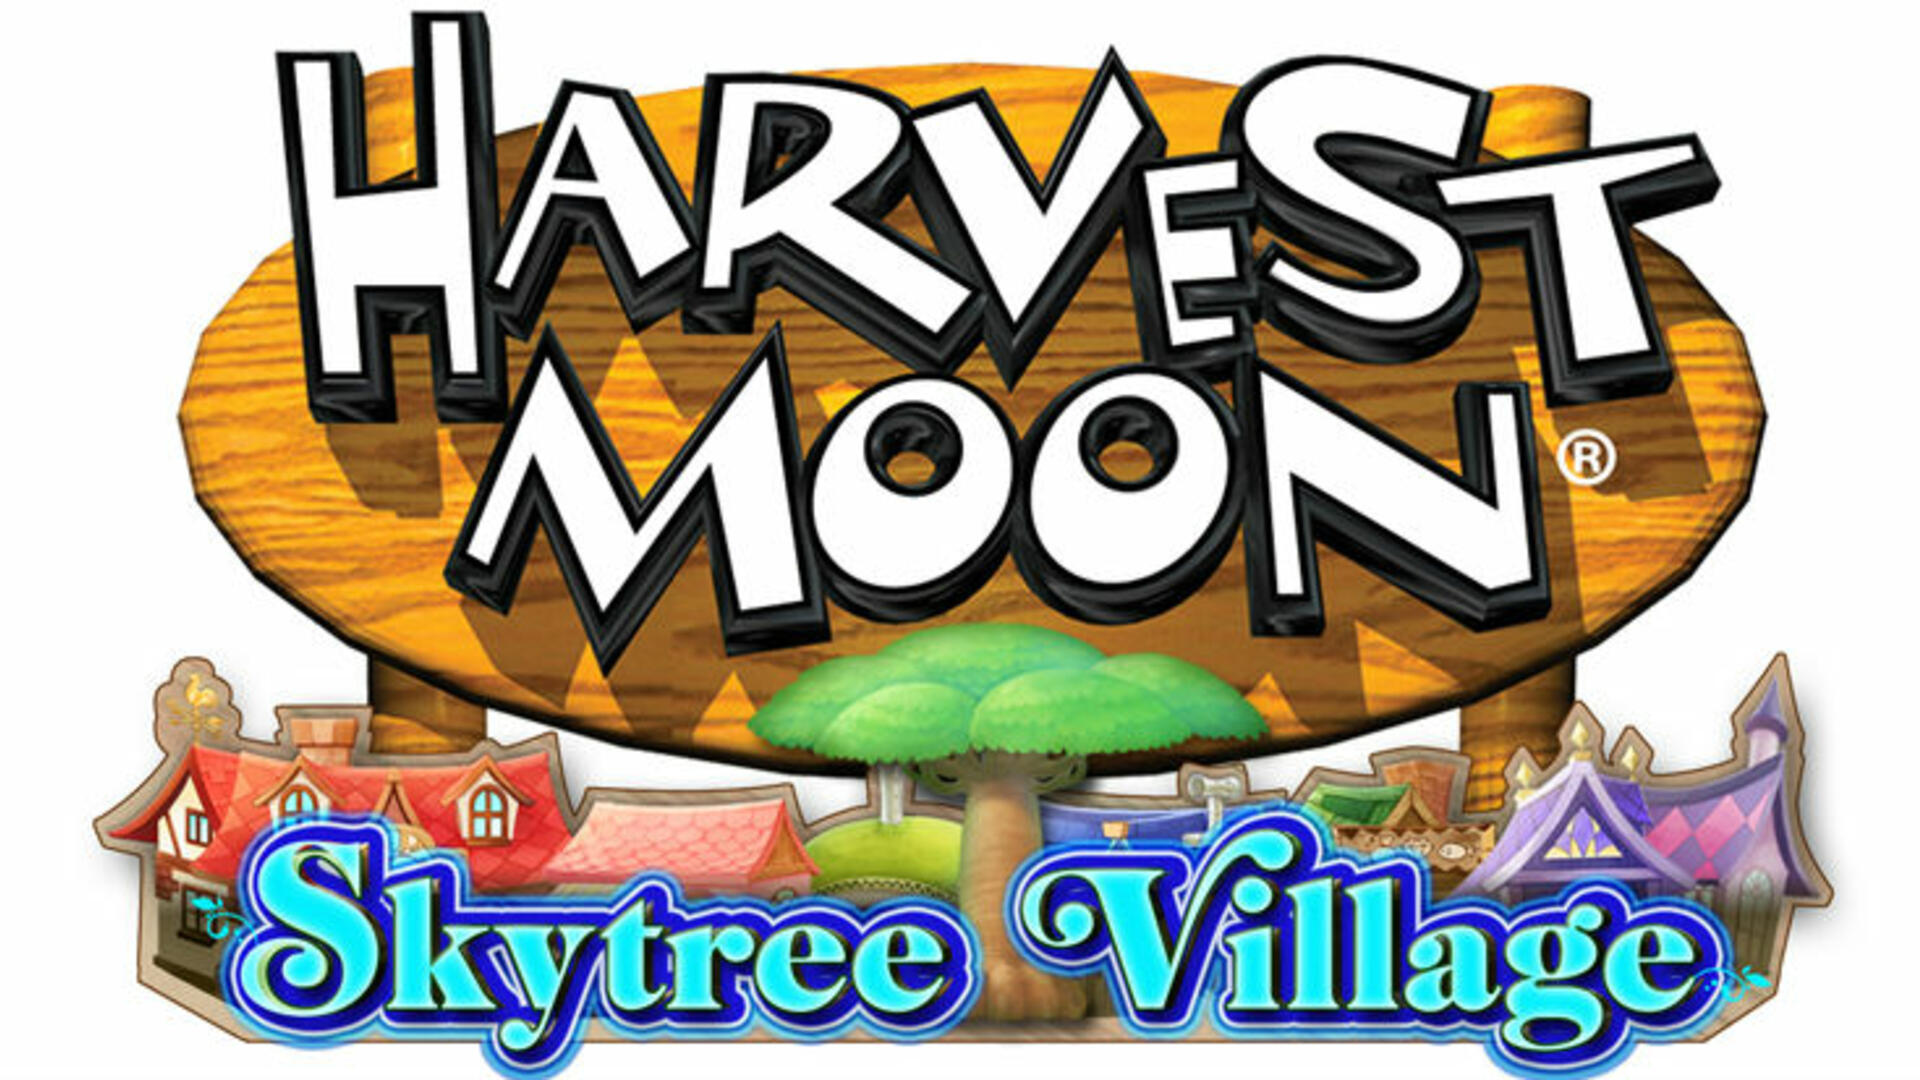 Natsume's E3 Offerings Include Harvest Moon: Skytree Village, River City: Tokyo Rumble, and Wild Guns: Reloaded